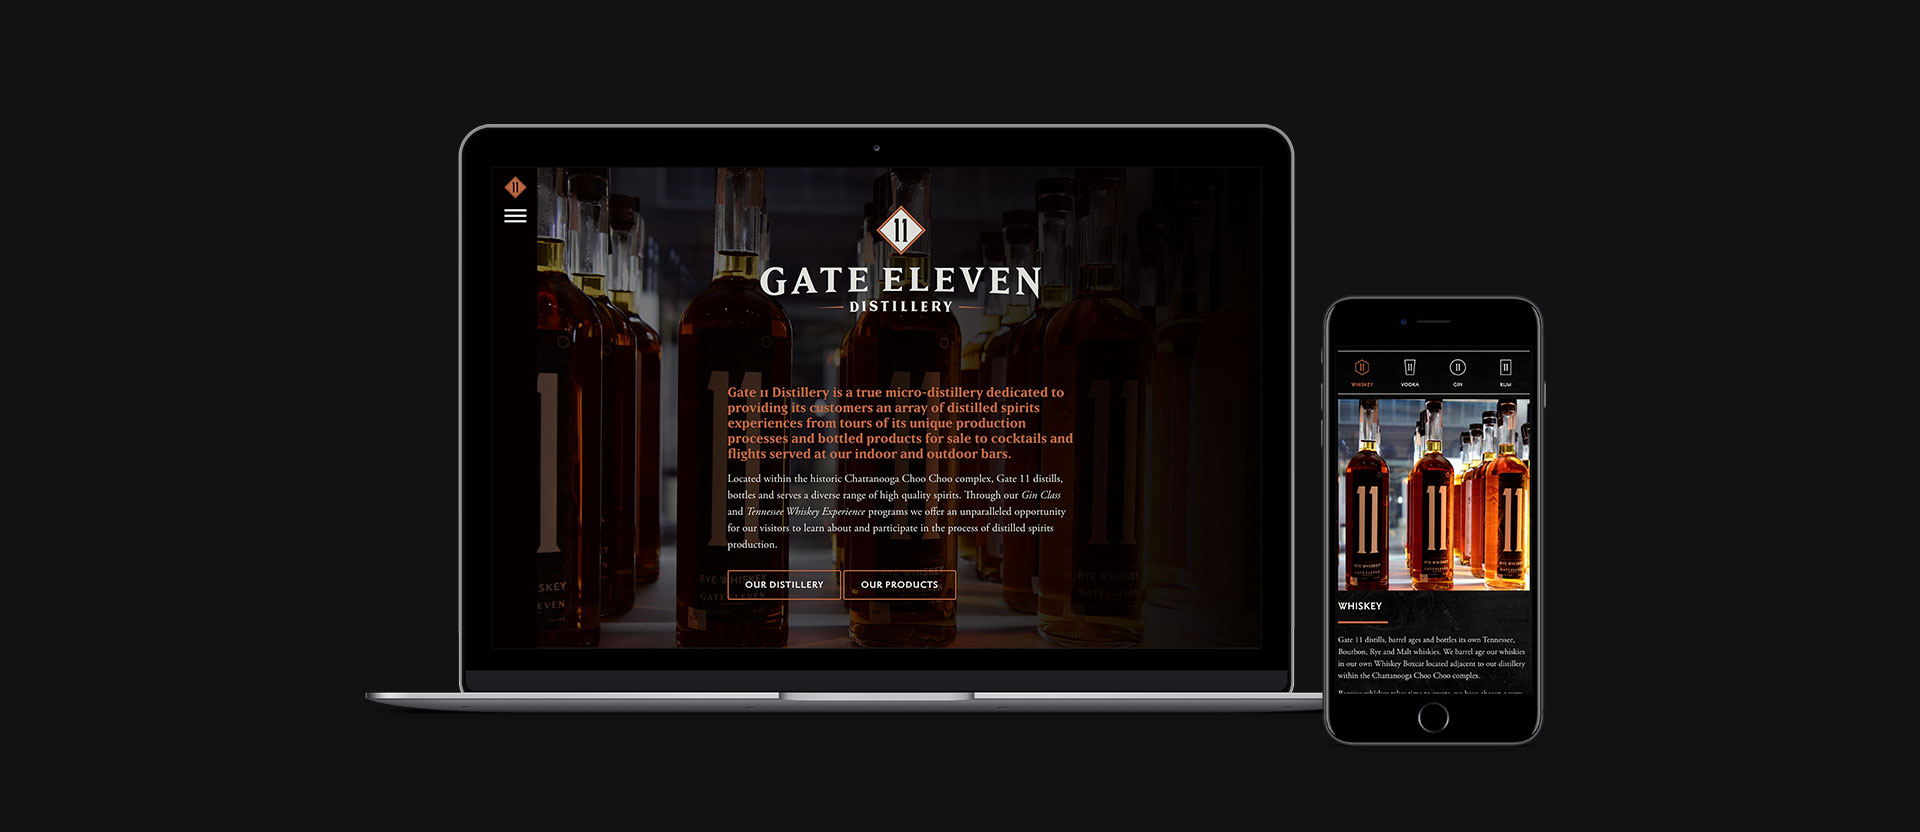 Gate 11 Distillery - Branding, Web Design, Web Development, Responsive Design